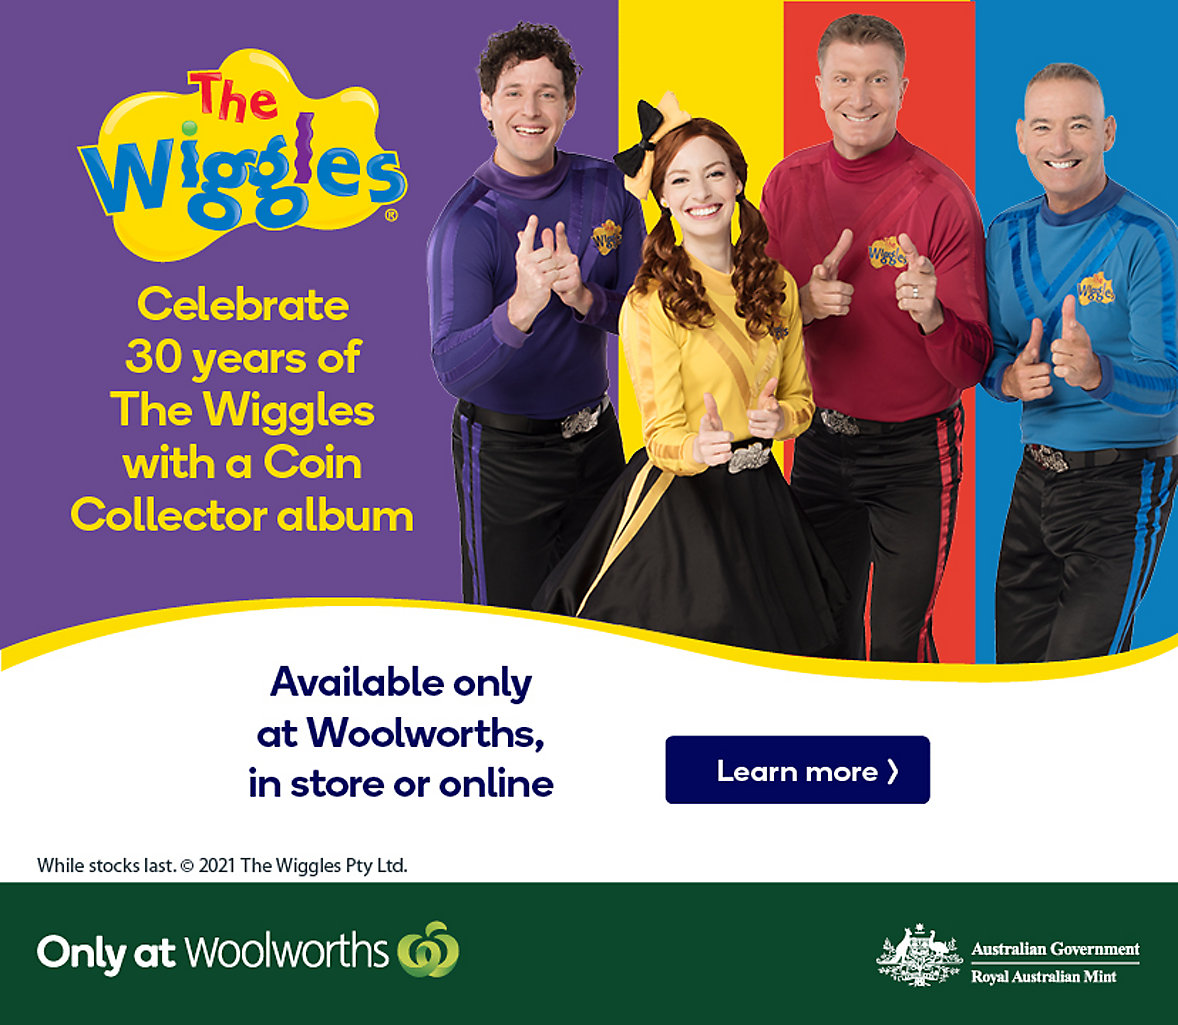 Celebrate with The Wiggles